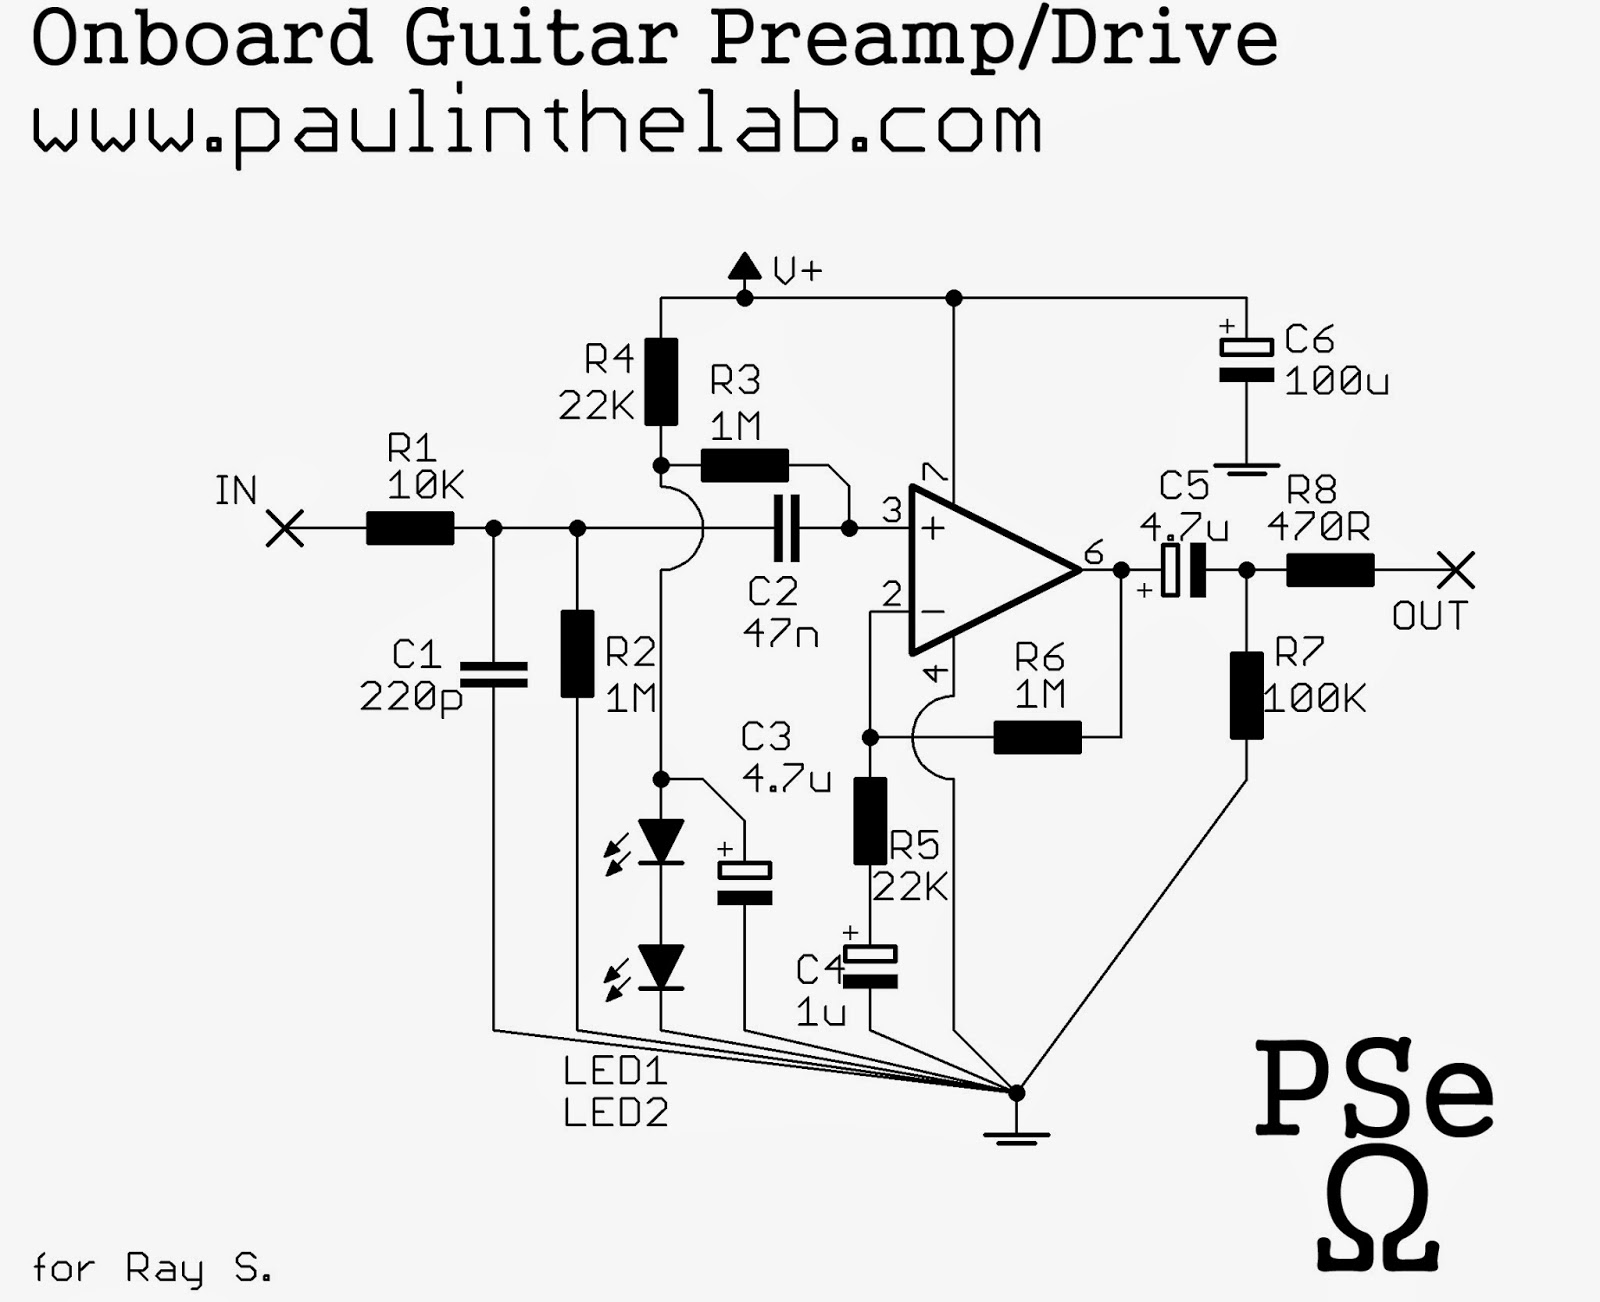 Paul In The Lab: Onboard Guitar Preamp Drive Stripboard